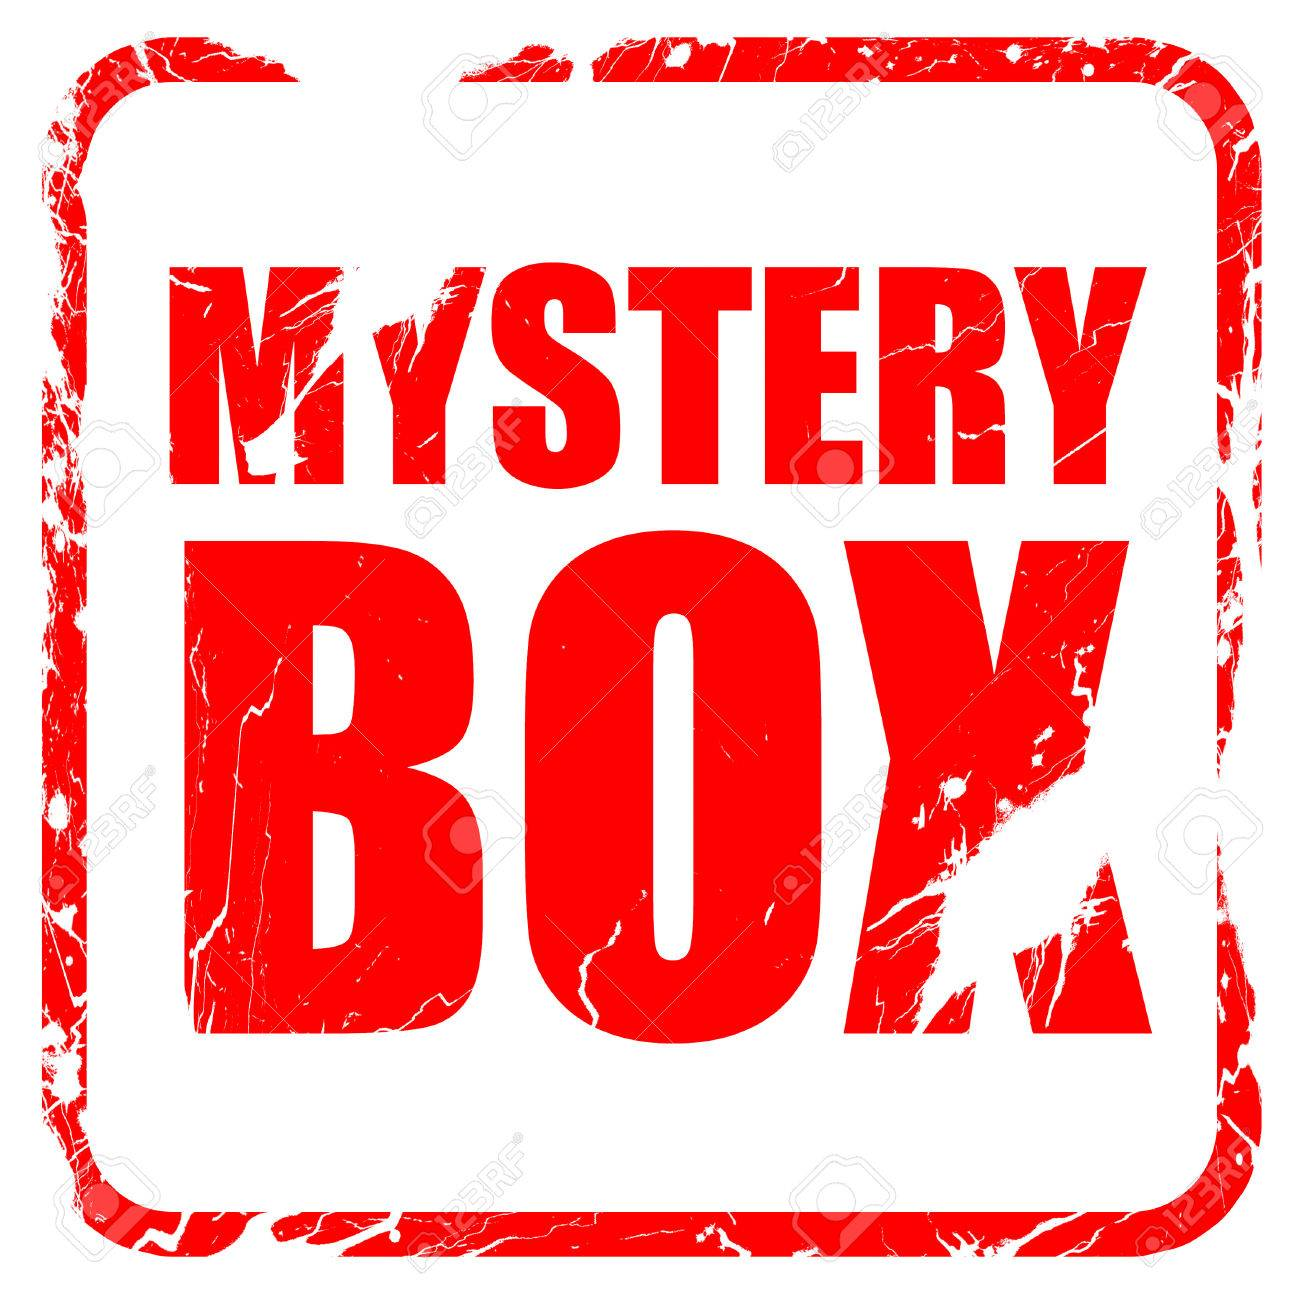 Mystery Box Red Rubber Stamp With Grunge Edges Stock Photo